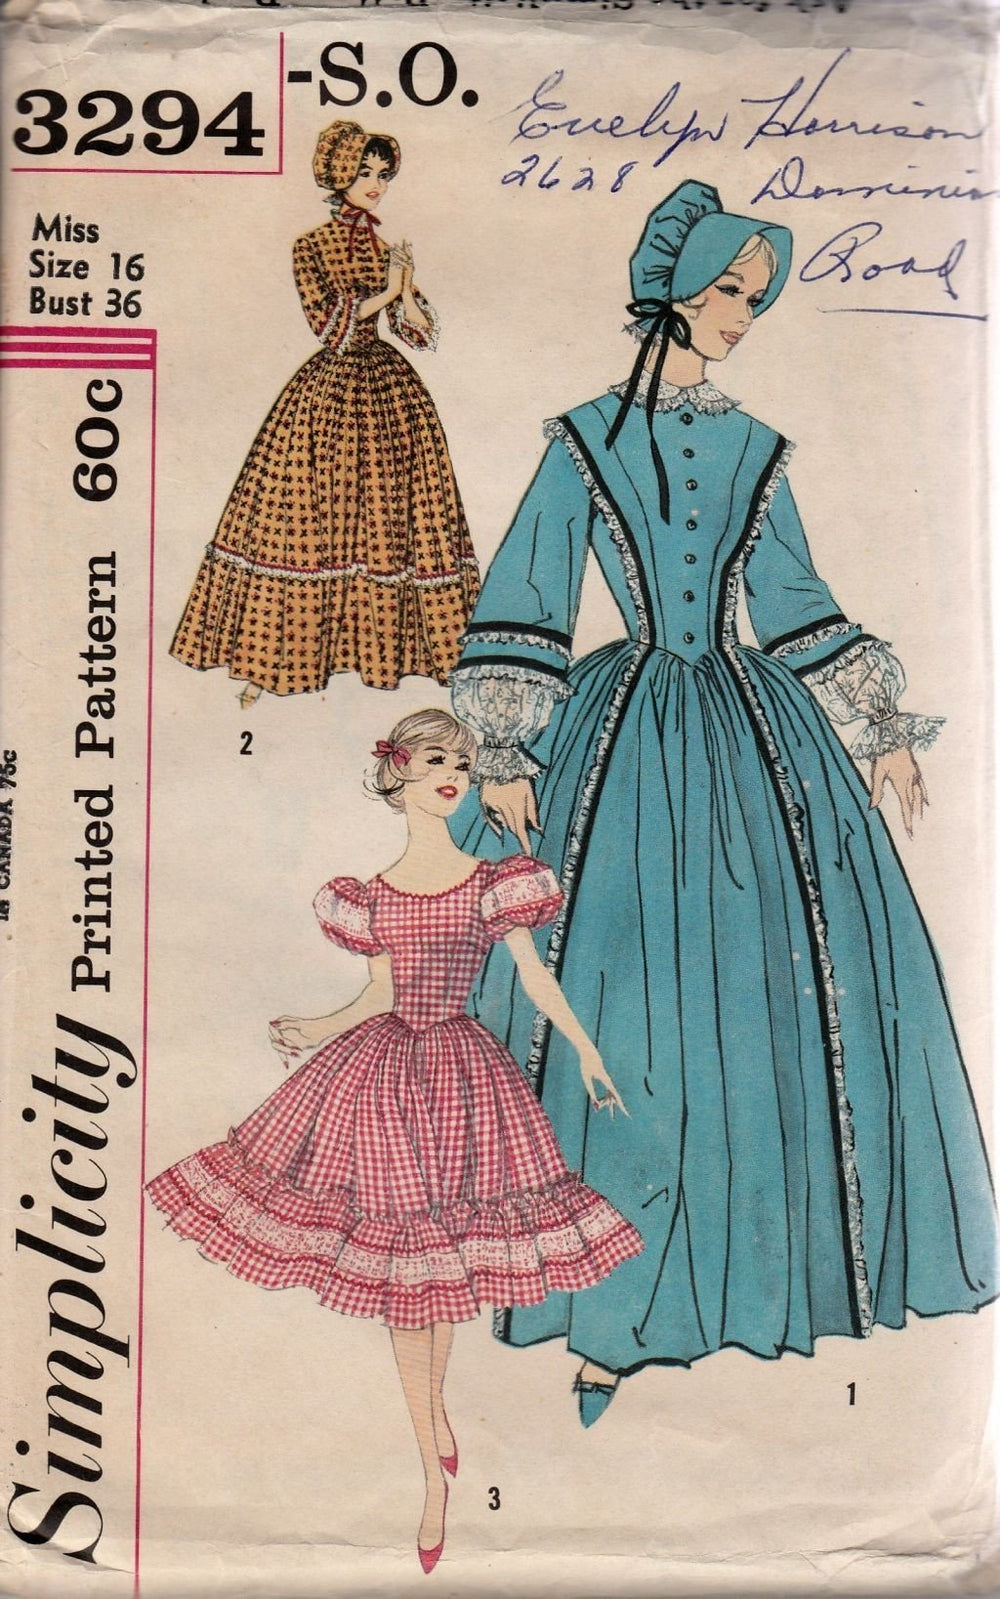 Simplicity 3294 Vintage 1950's Sewing Pattern Ladies Centennial Costime Square Dance Dress - VintageStitching - Vintage Sewing Patterns